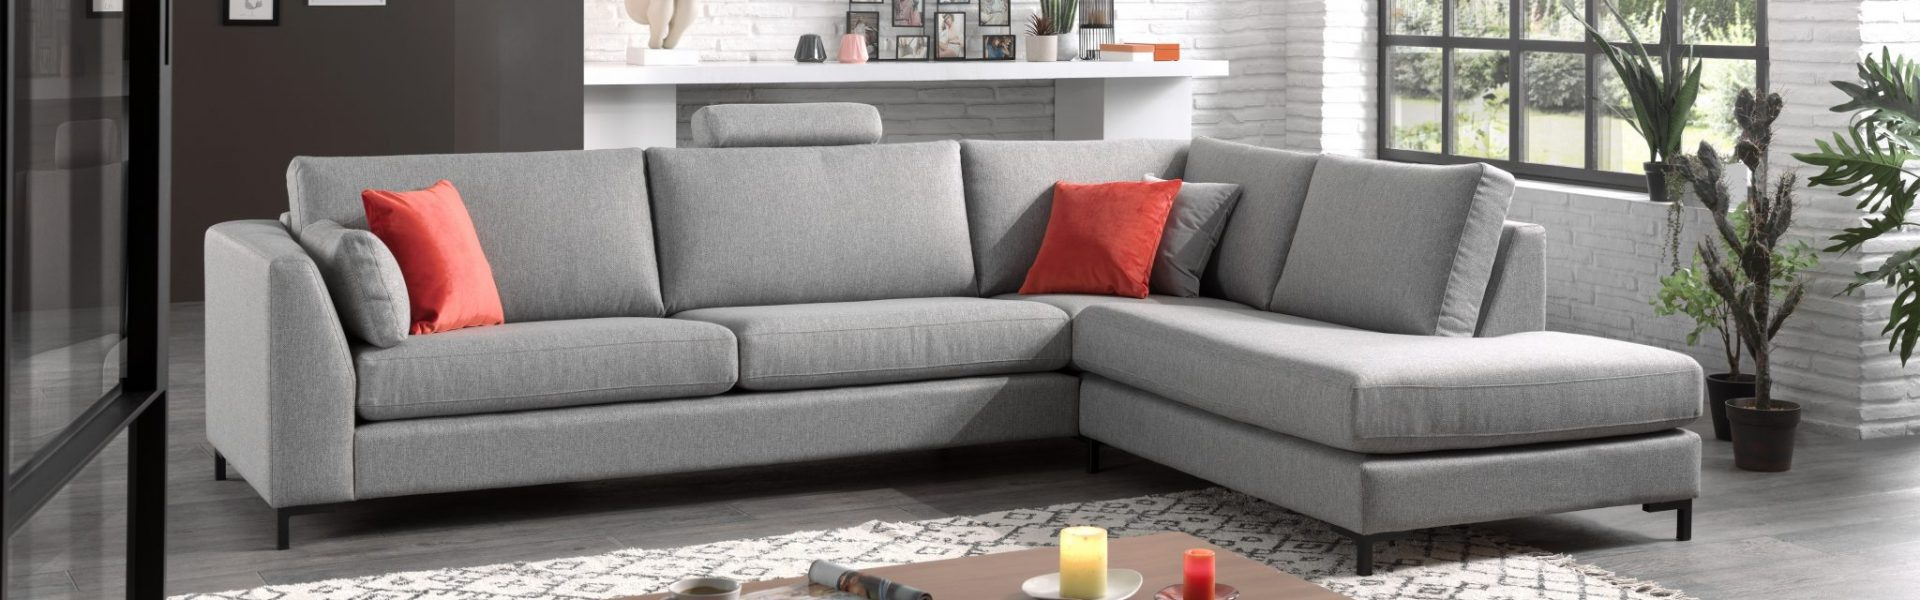 Living Sofa Pris Scandinavian Style Upholstered Furniture